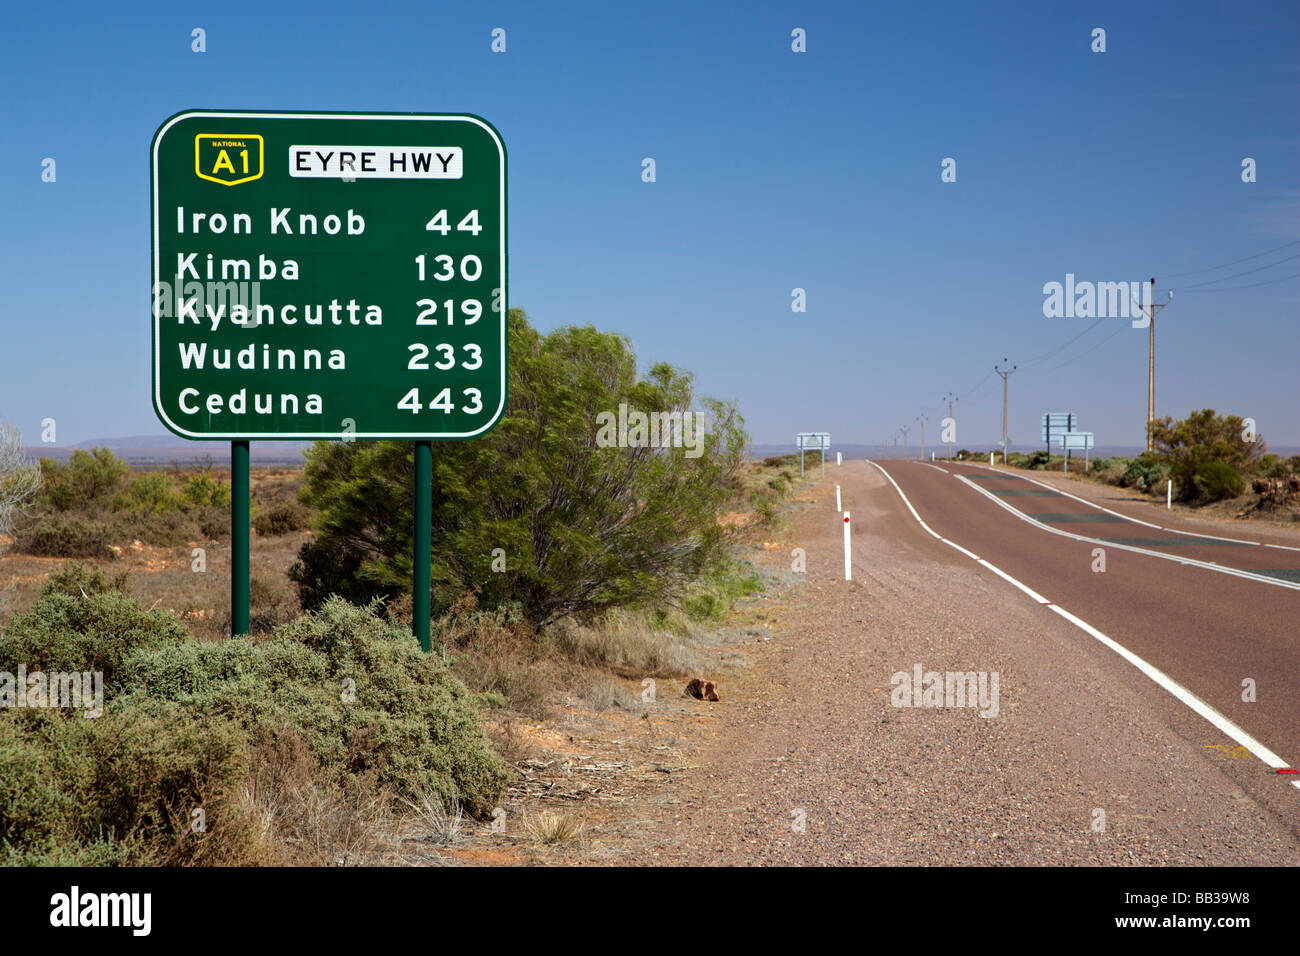 Road sign on the Eyre Highway in South Australia heading to Perth in West Australia - Stock Image